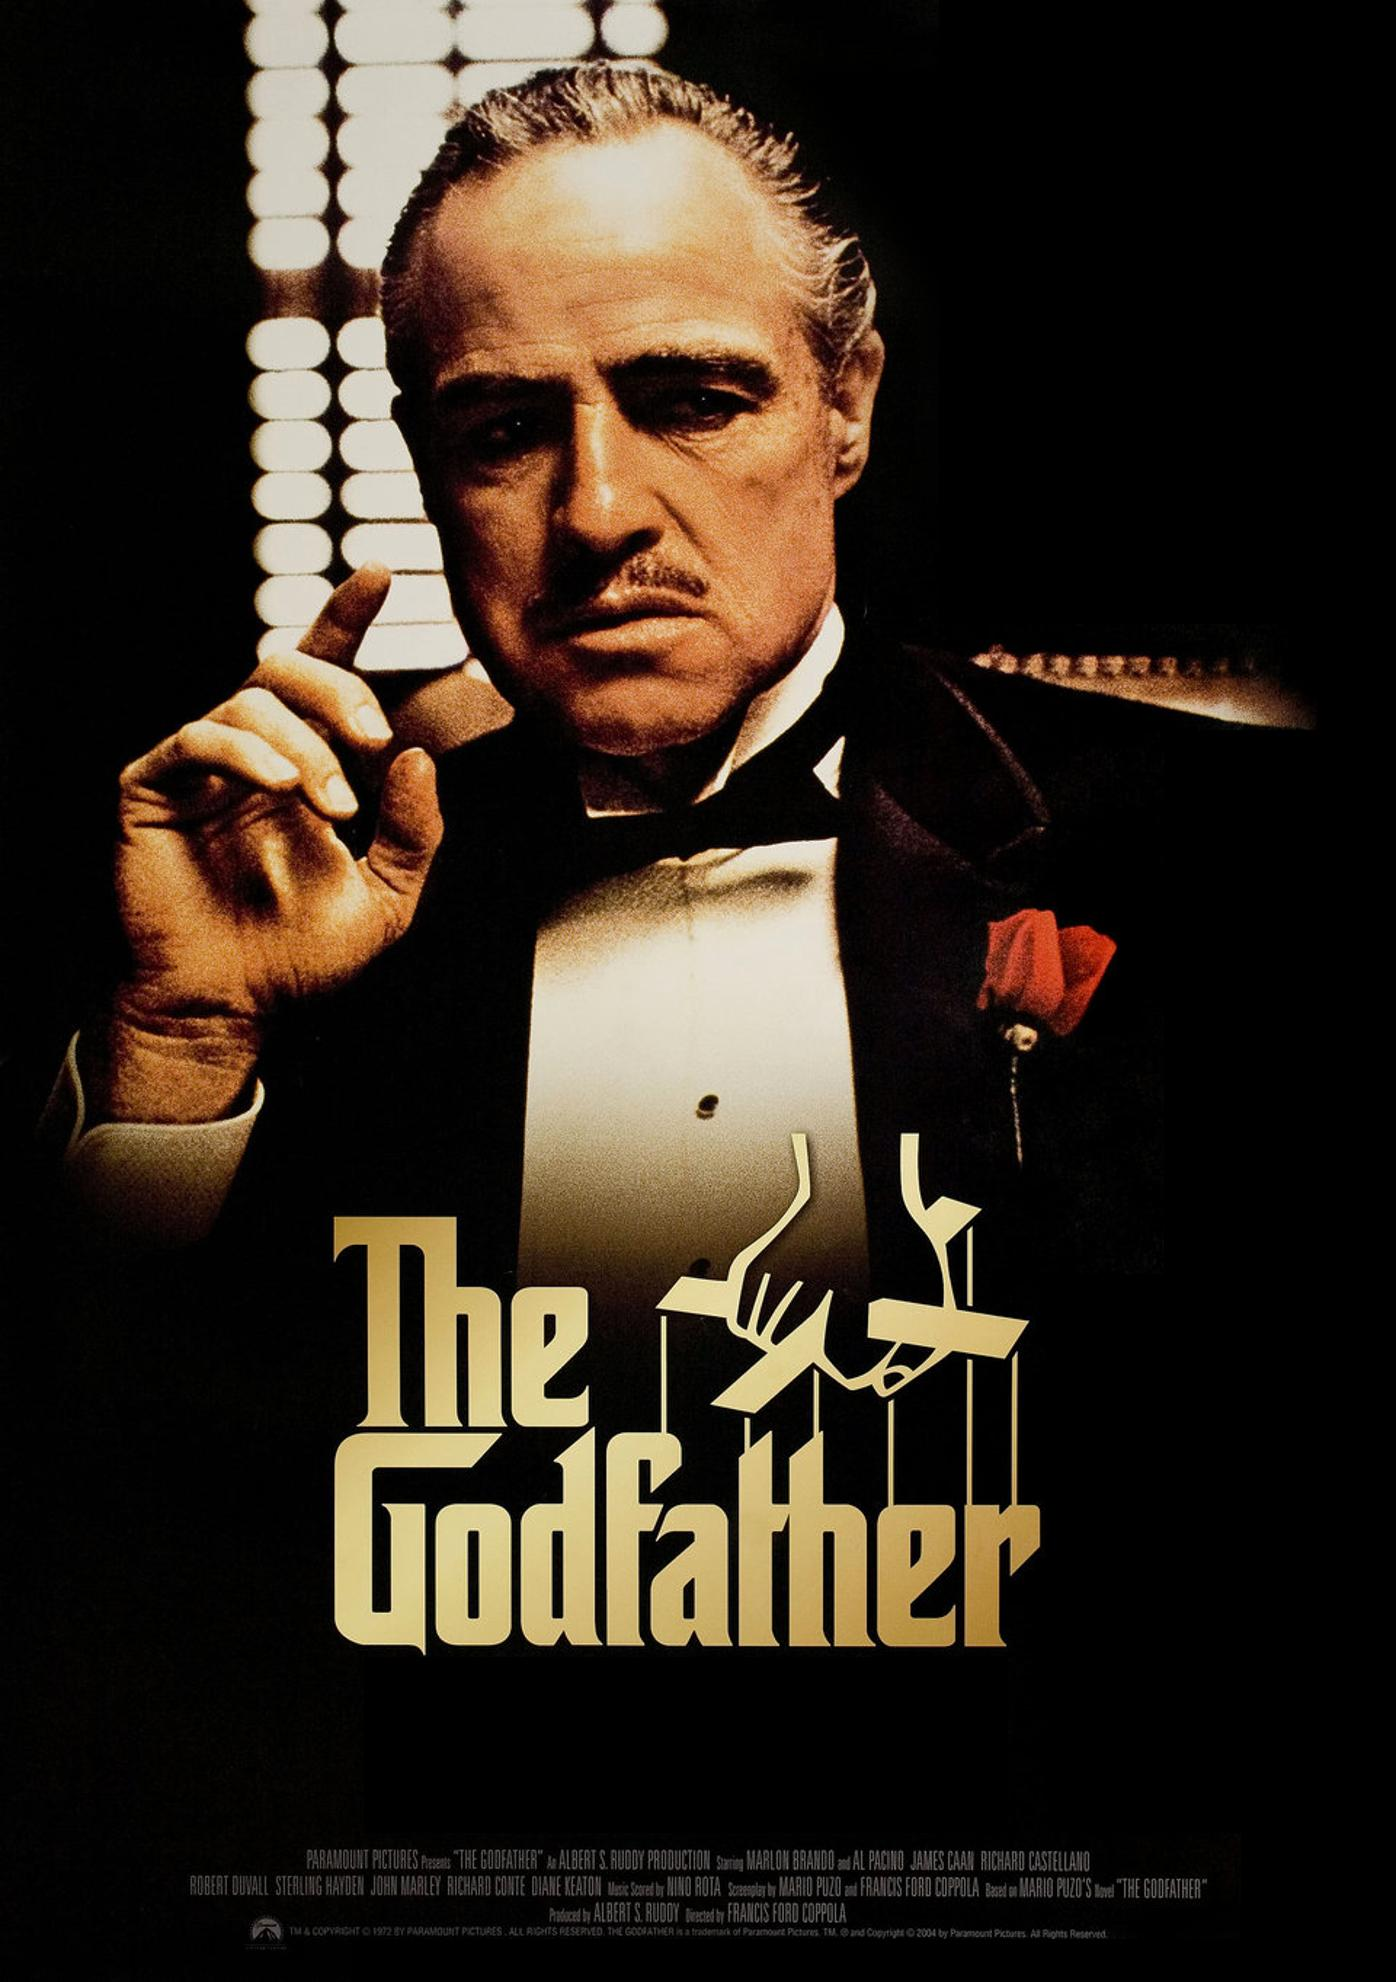 The Godfather kapak